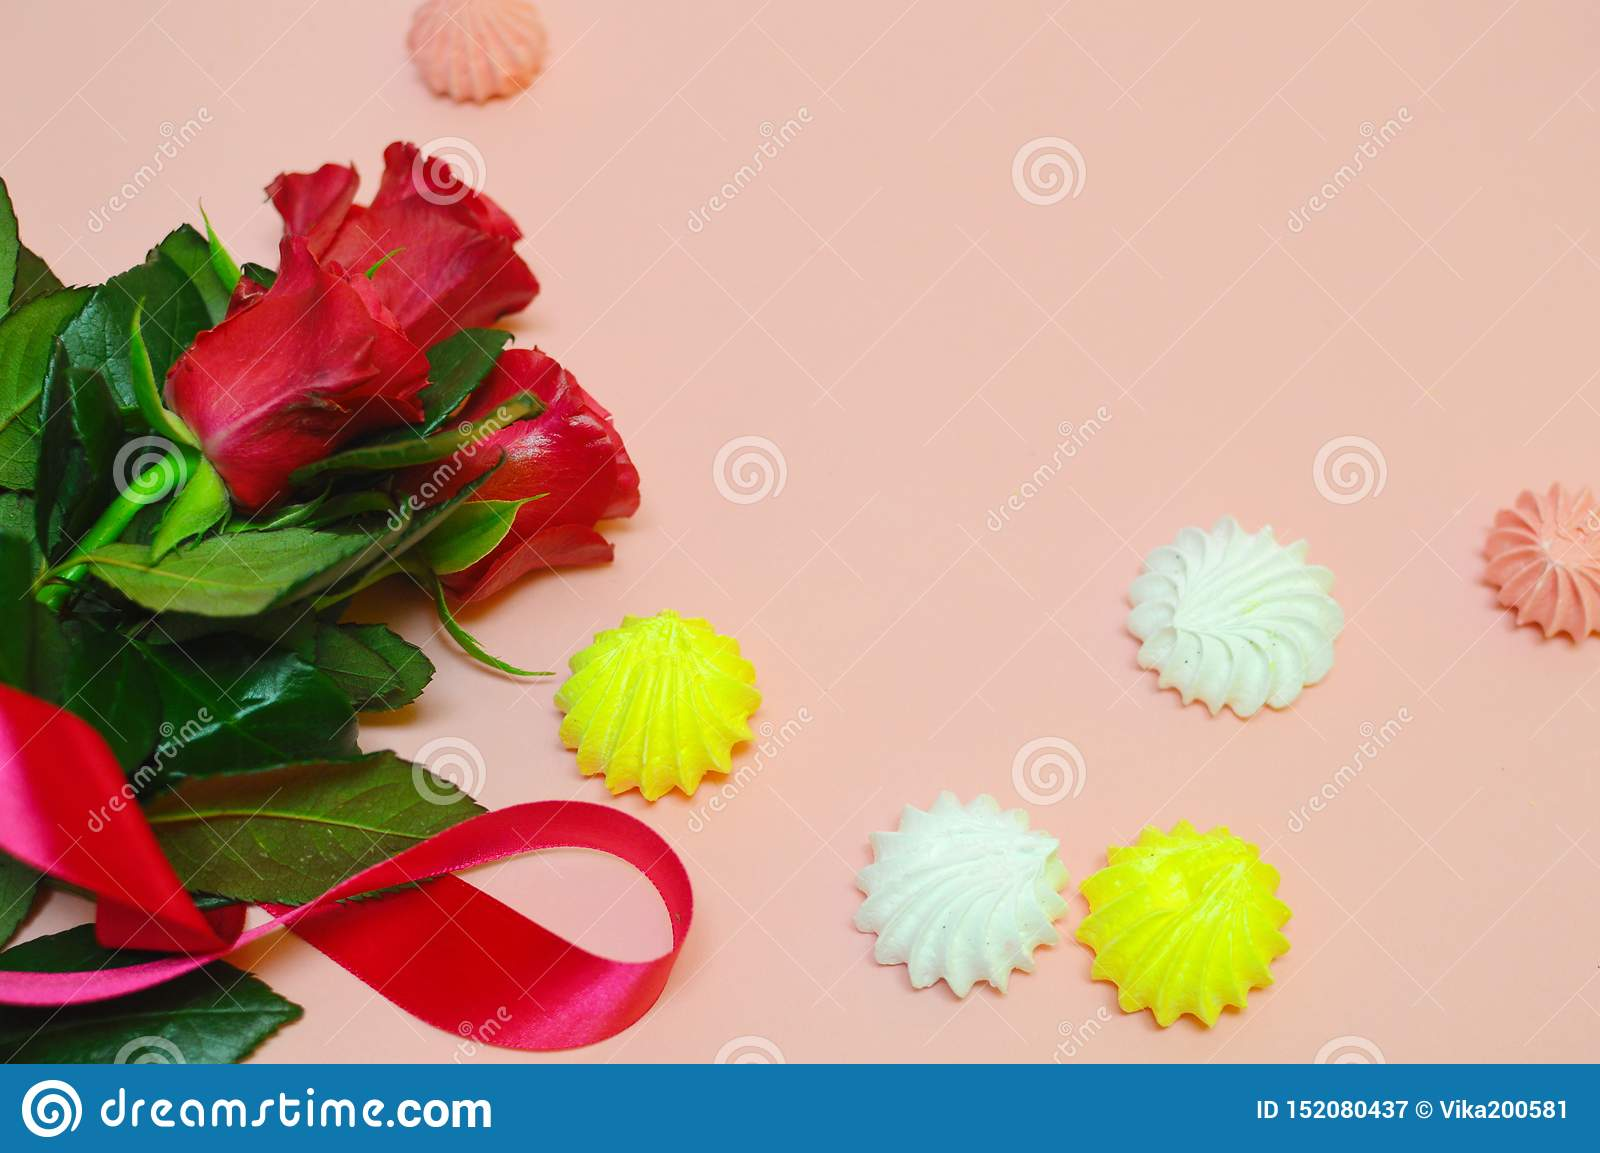 Red flowers on a pink background with copy space.